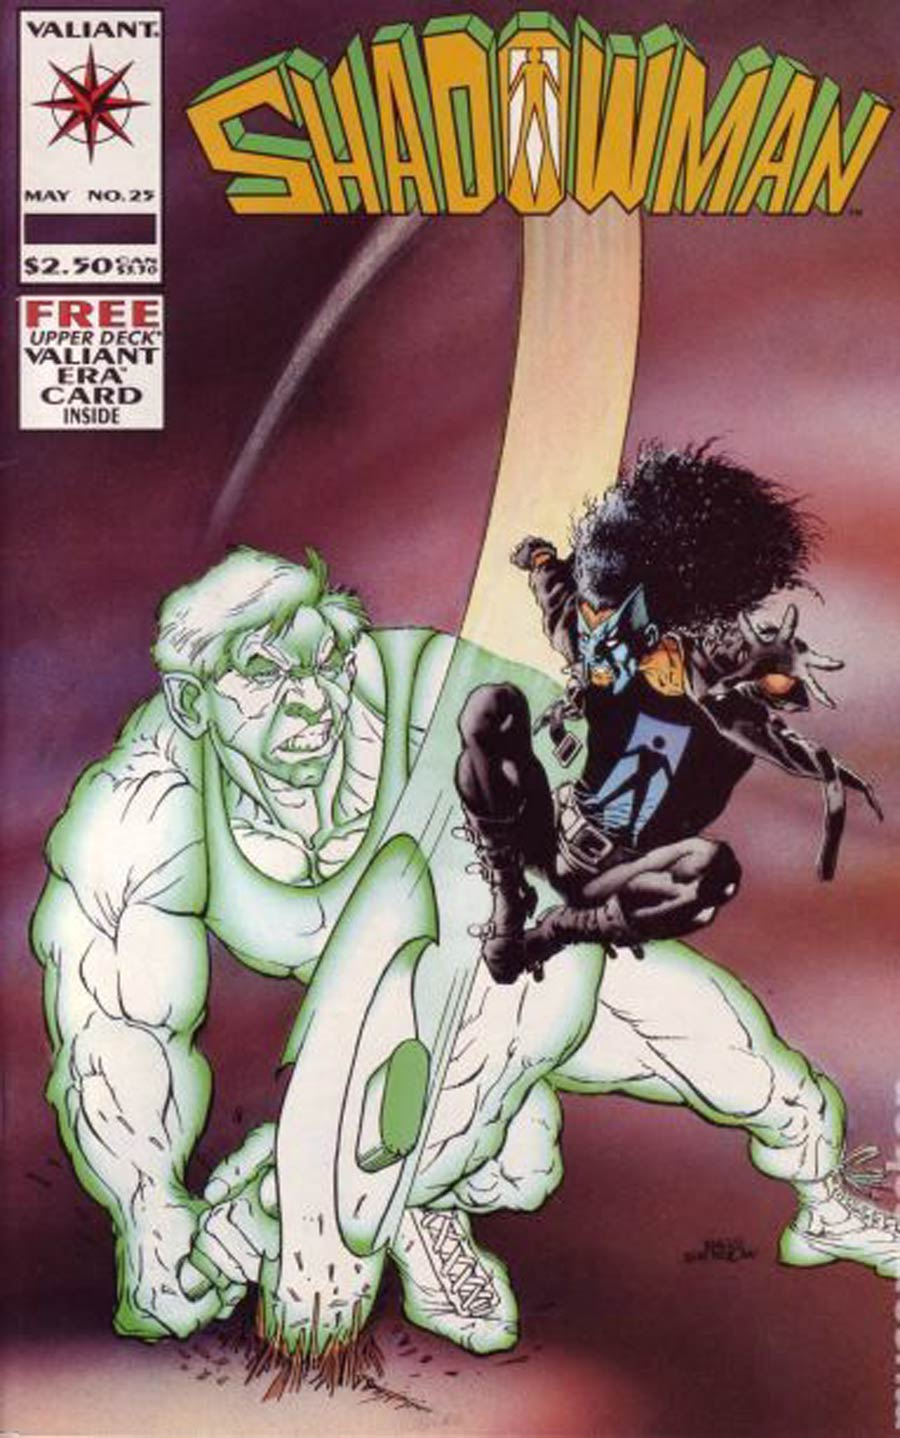 Shadowman #25 Cover B Without Card